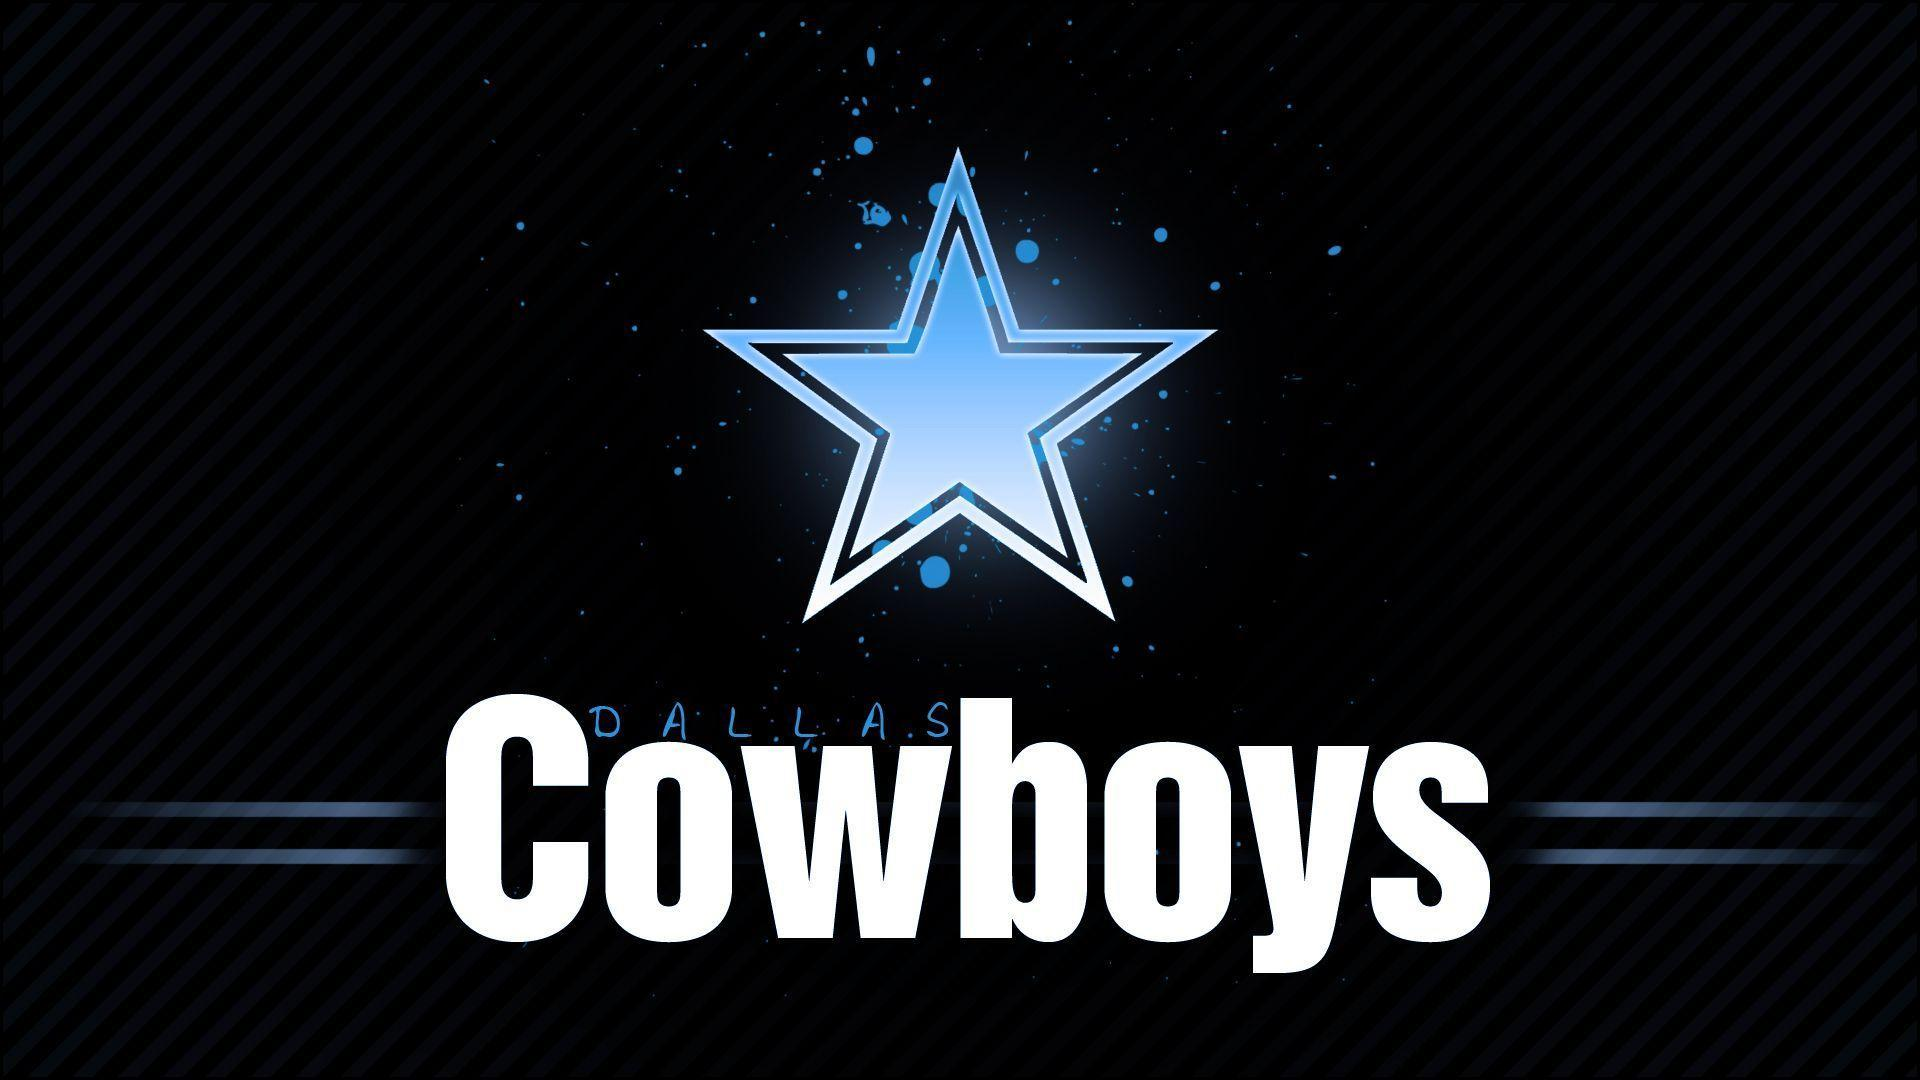 Free Dallas Cowboys Wallpapers Cell Phone 47 Wallpapers – HD